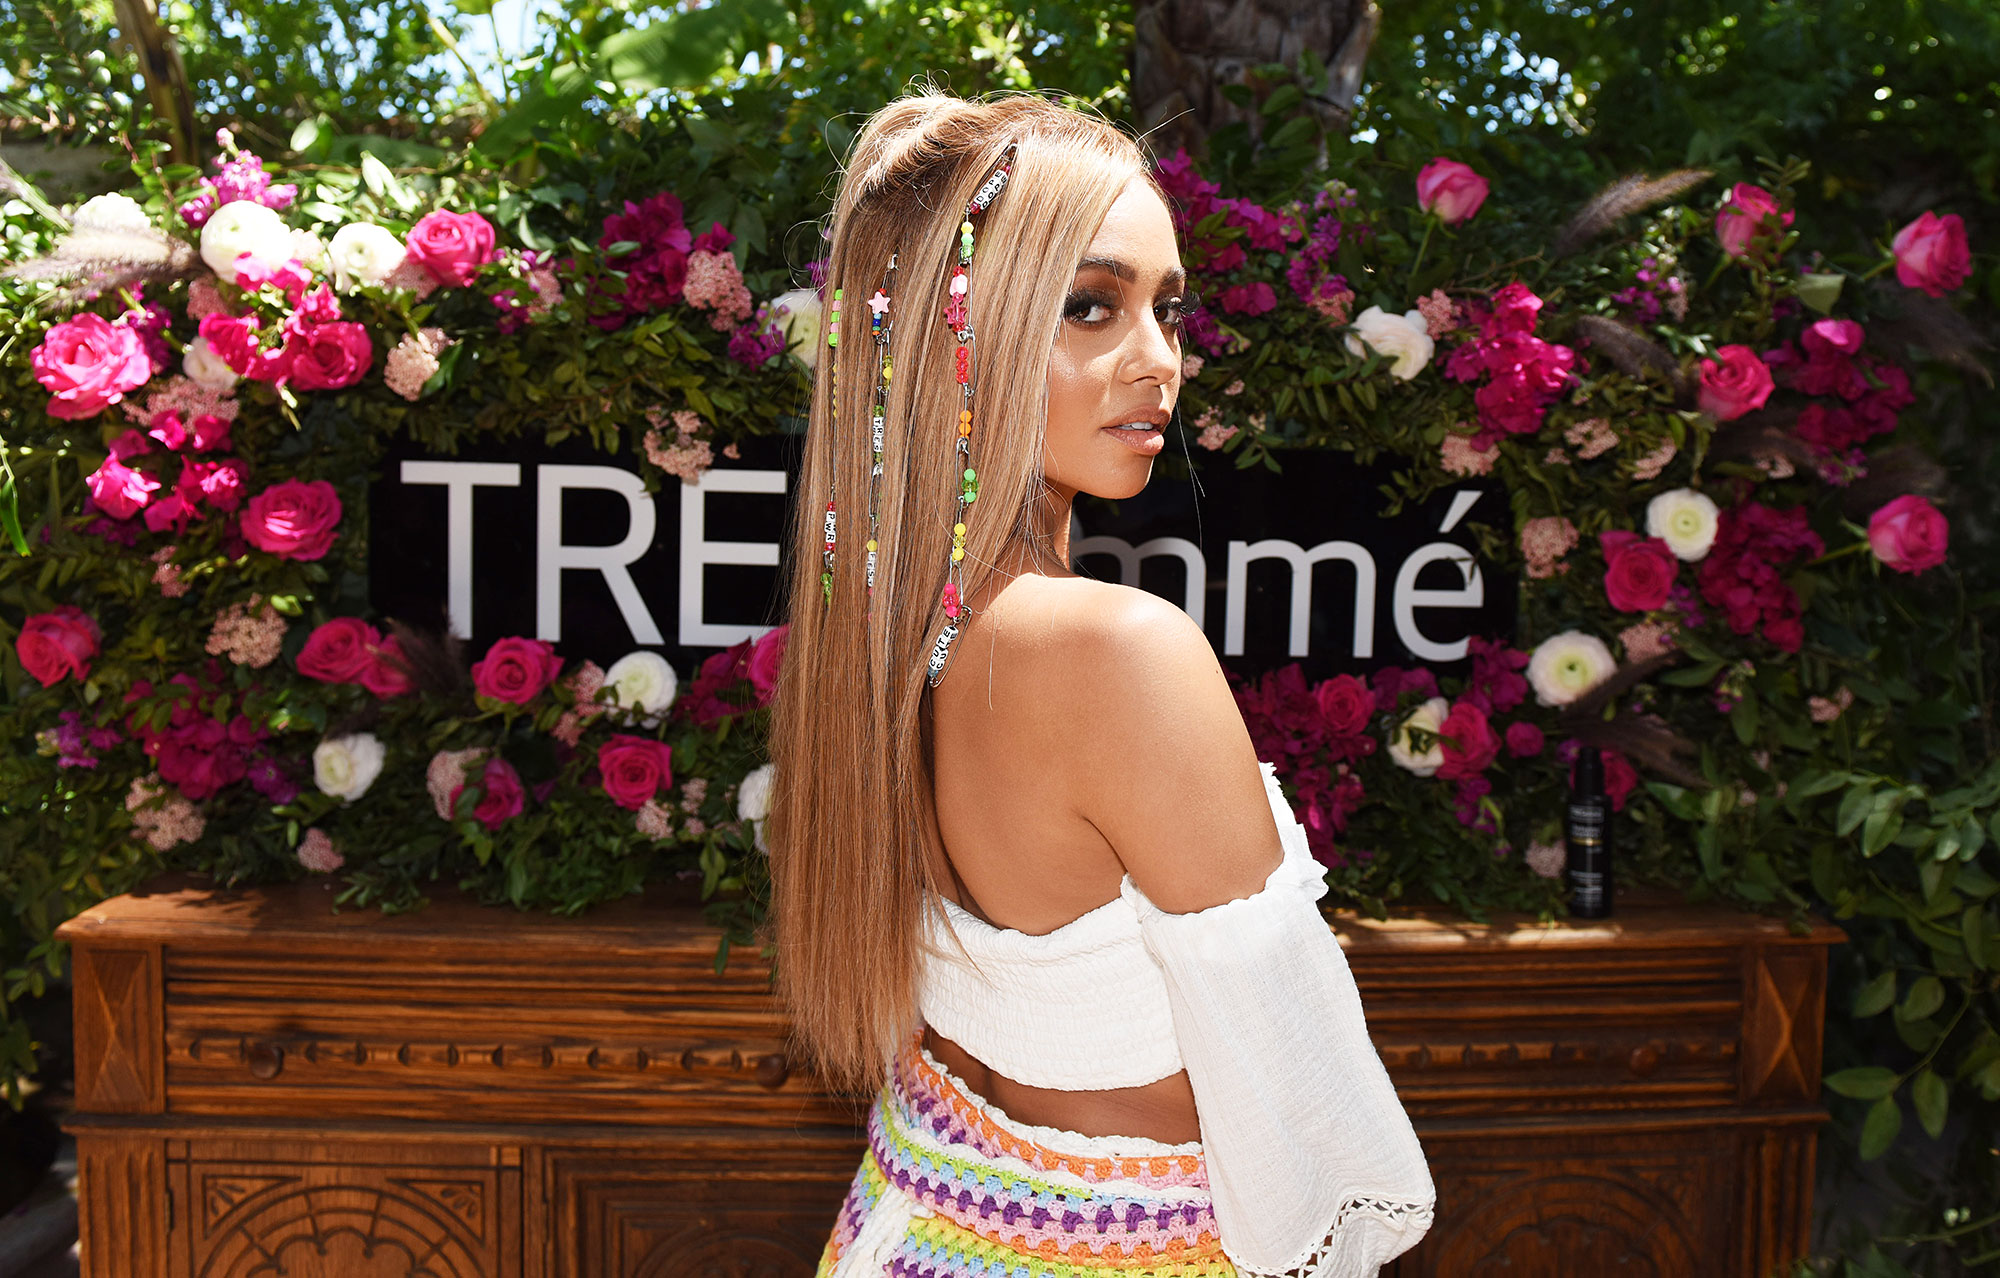 Vanessa Morgan Neon Beaded Half Up Ponytail TRESemme Coachella - The actress posed with her Neon Beaded Half-Up Ponytail at TRESemmé's #TRESfest Coachella event.